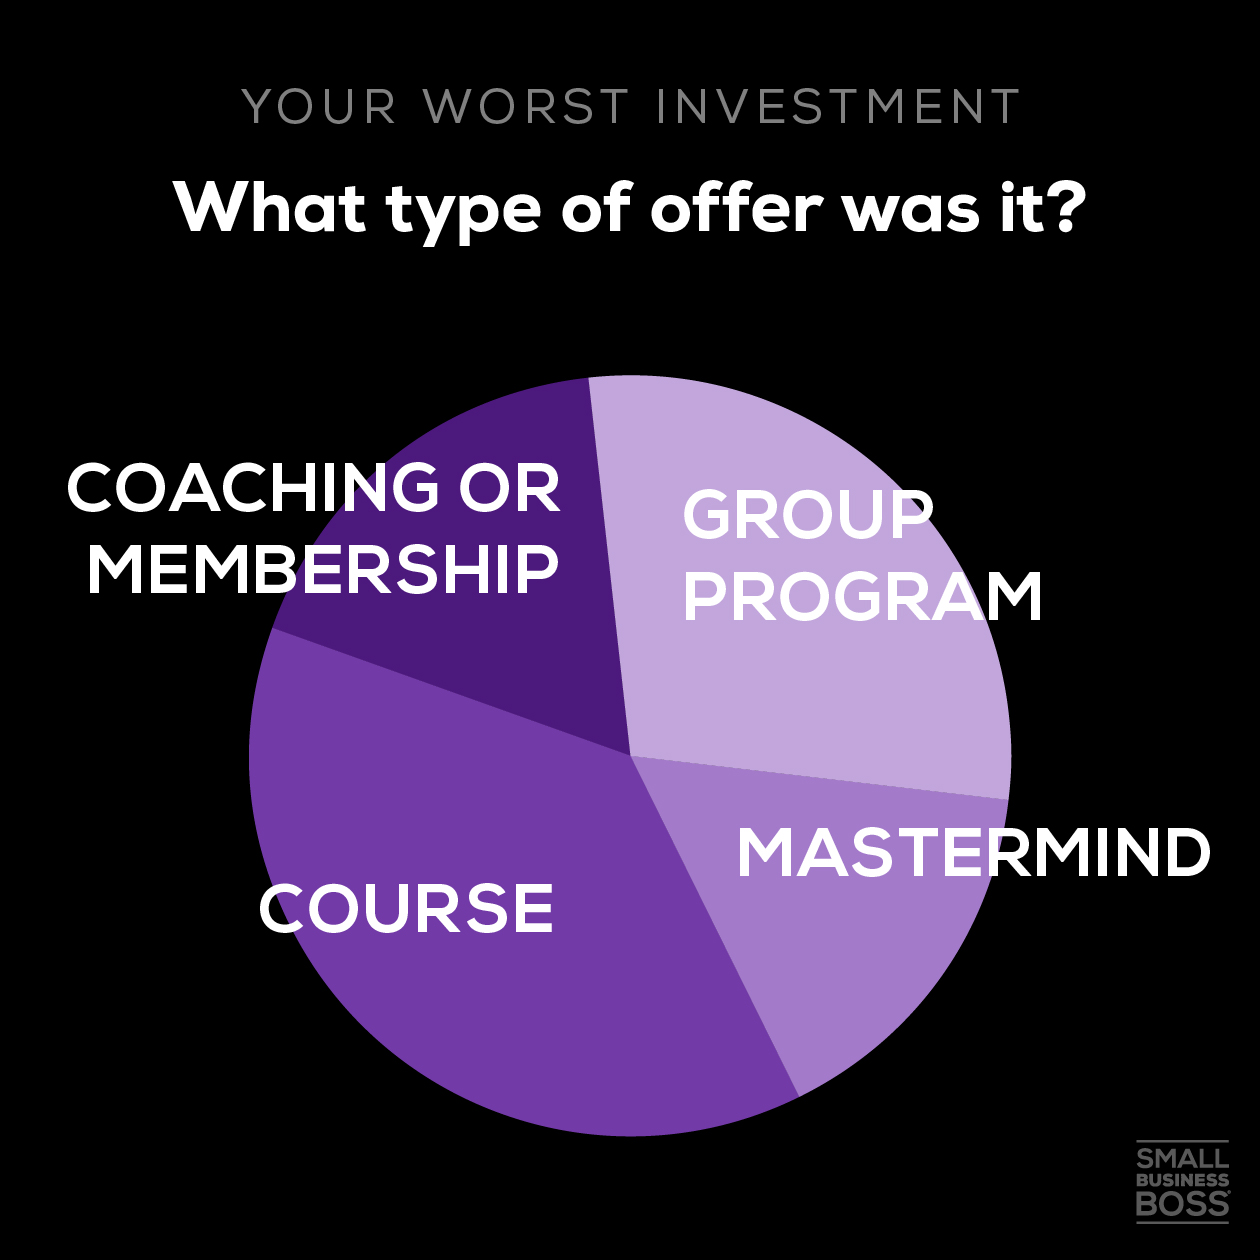 Worst investment-what type